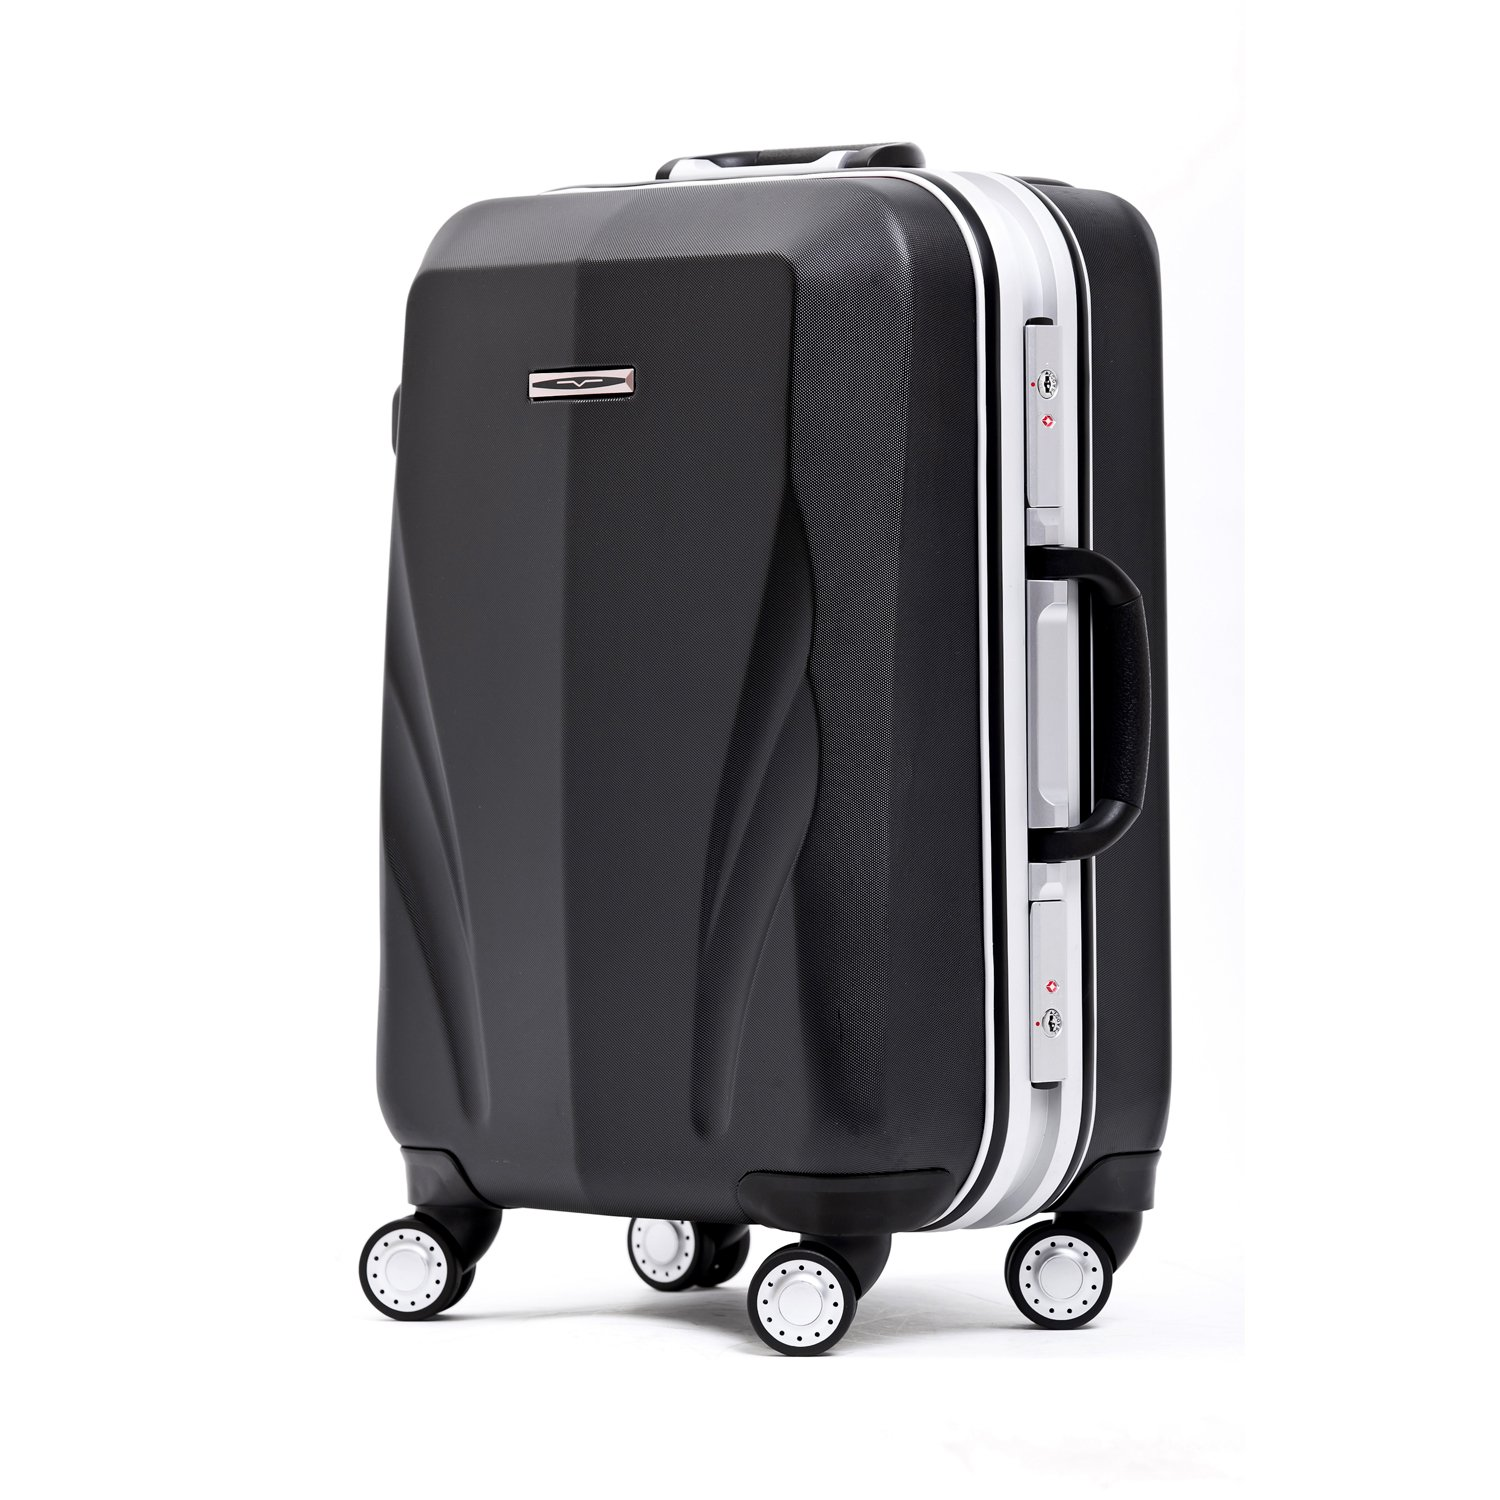 Unitravel Lightweight Luggage Hardside PC Suitcase Spinner Carry on Travel Gear